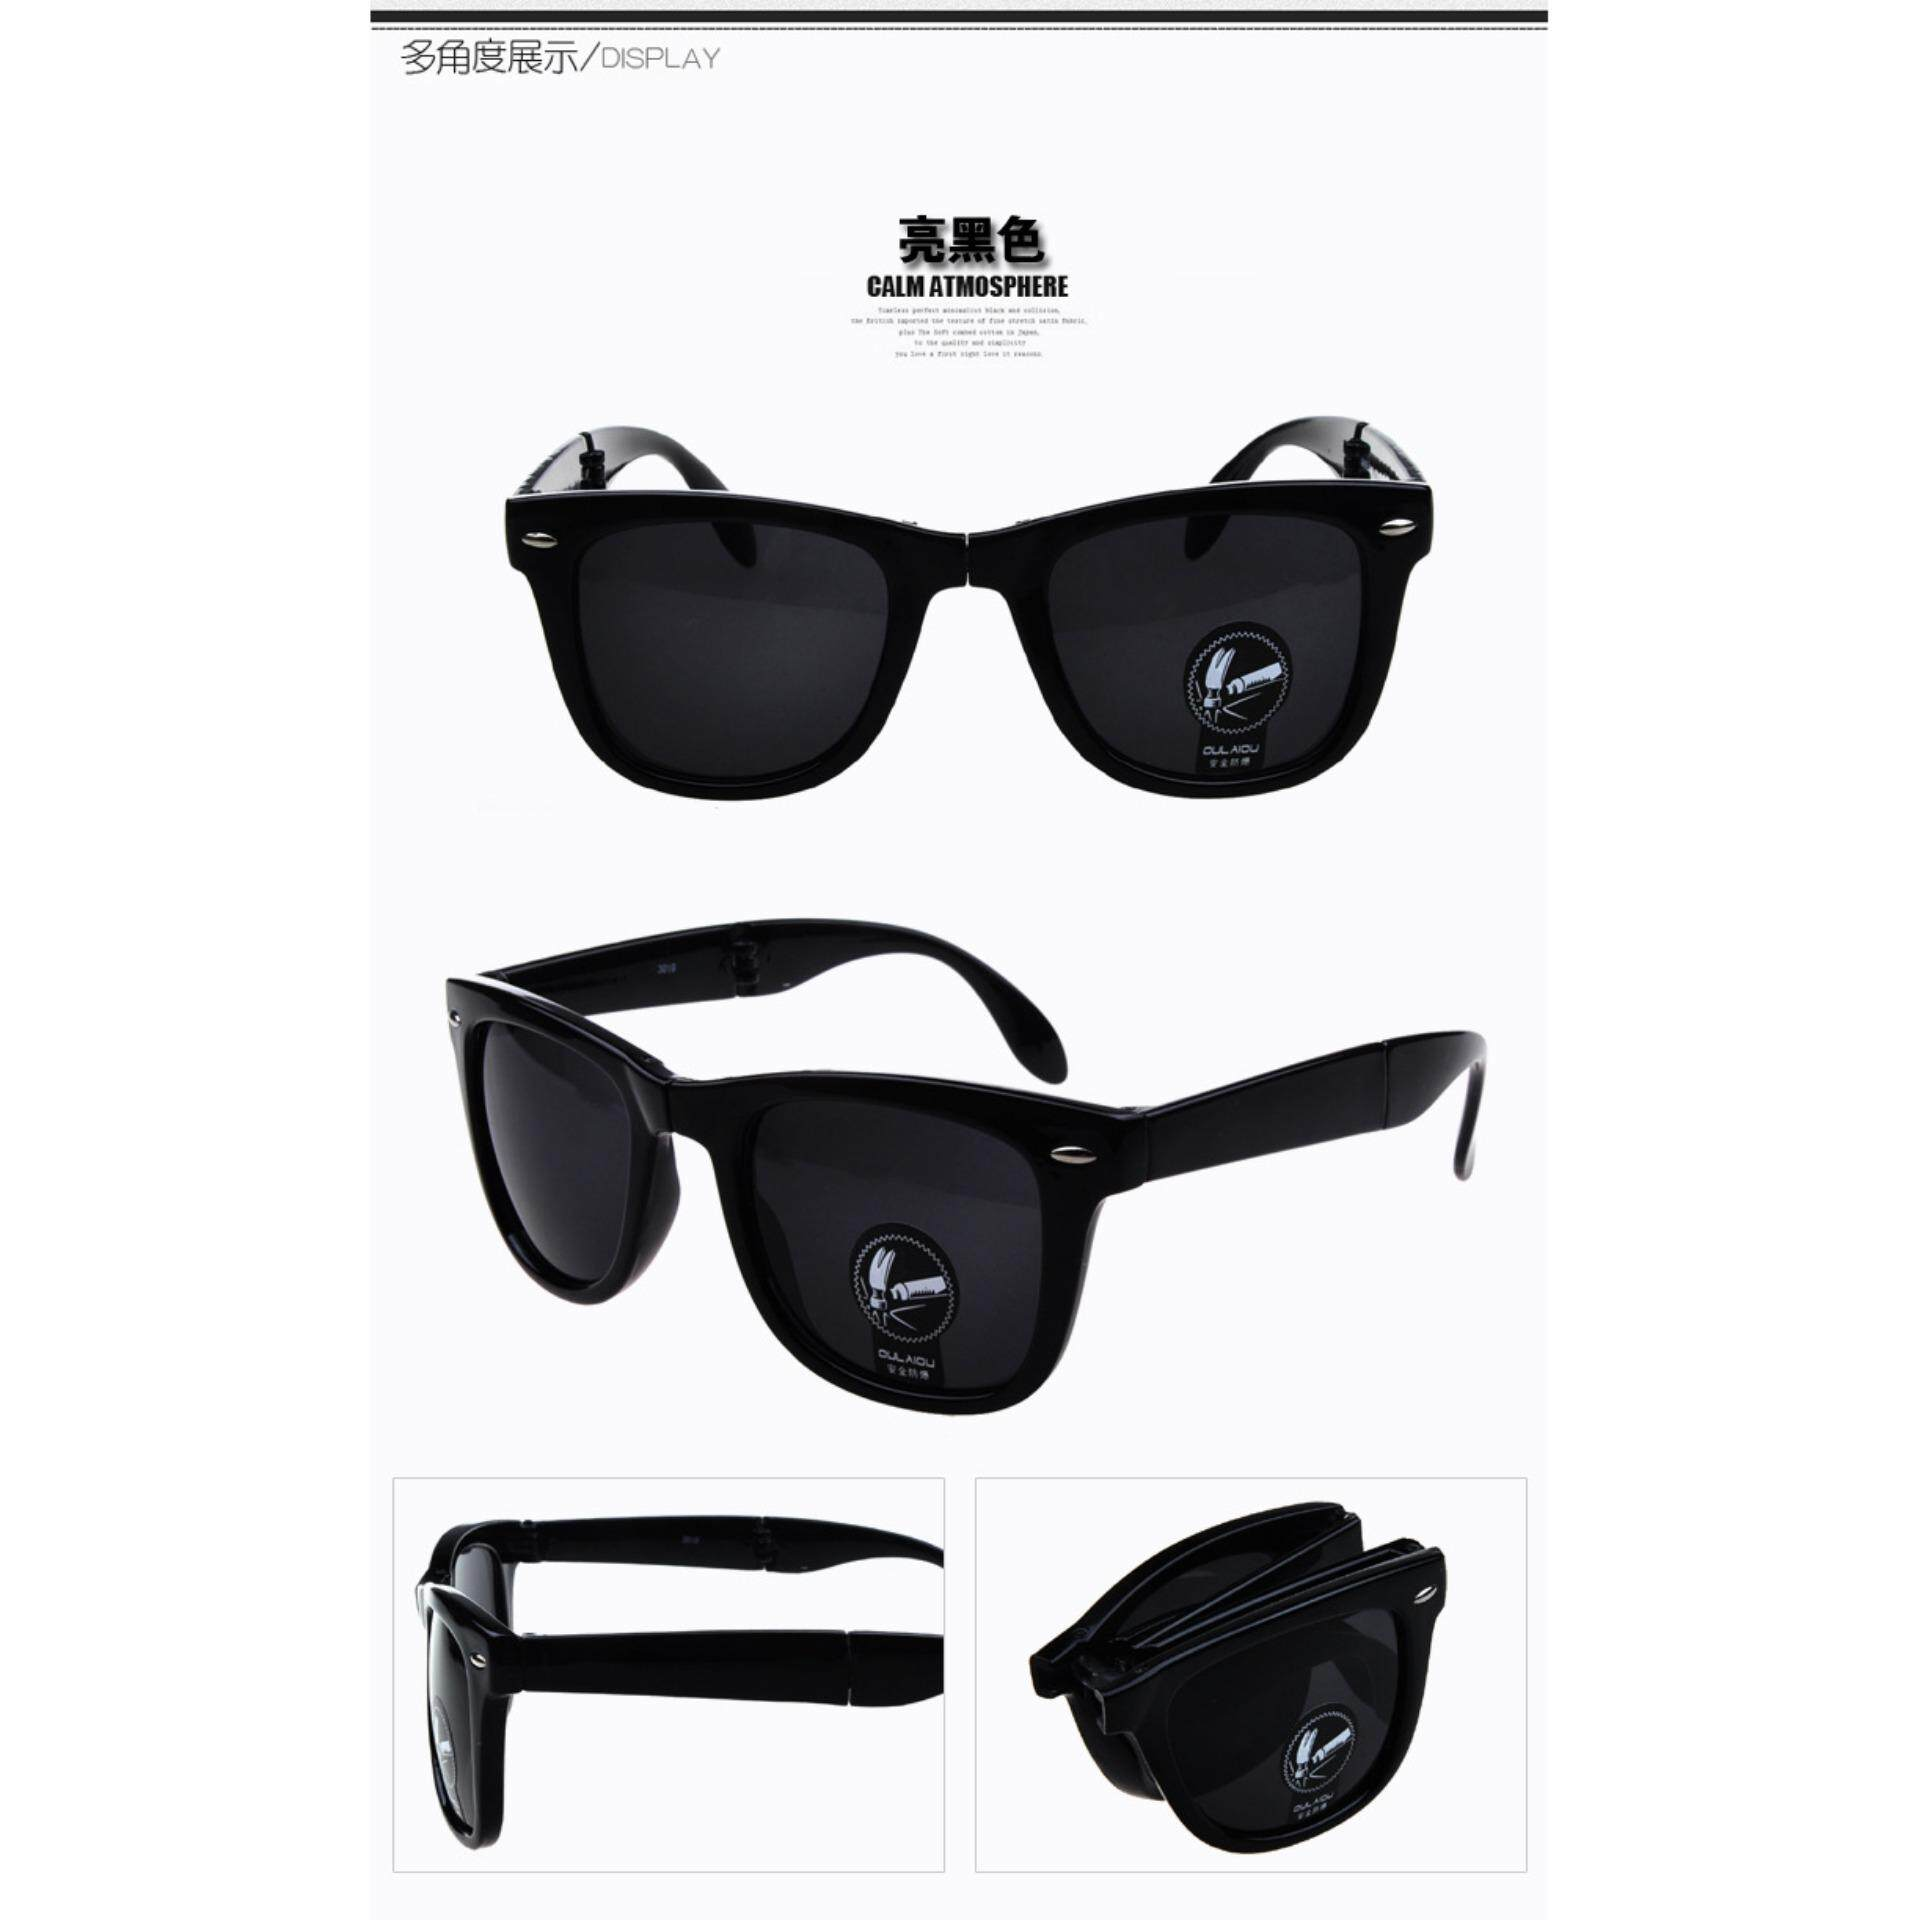 Explosion-proof safety folding sunglasses 3019 dazzling nails coated sunglasses + box black